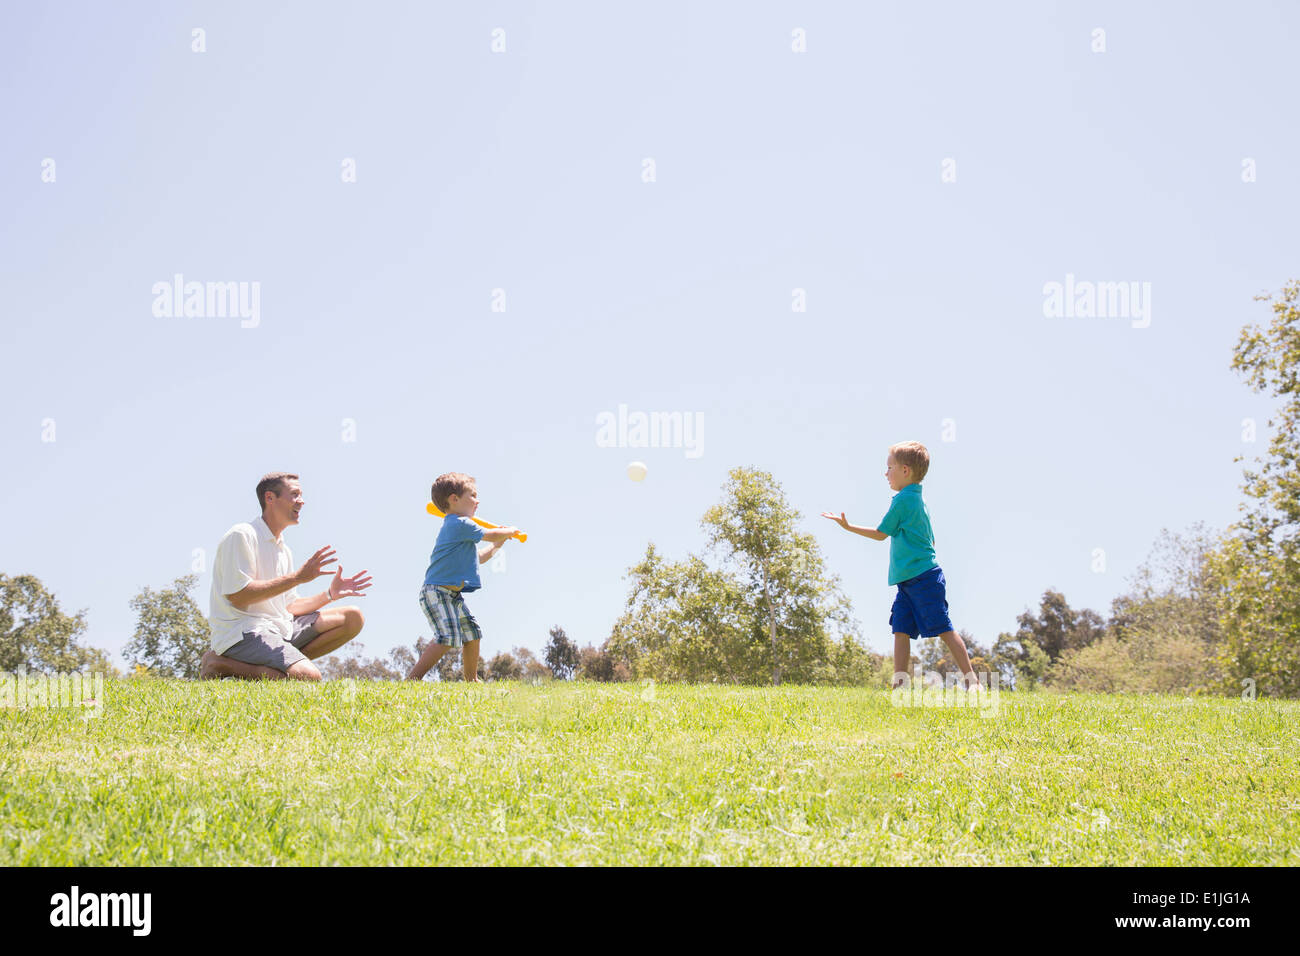 Father and sons playing baseball at park - Stock Image